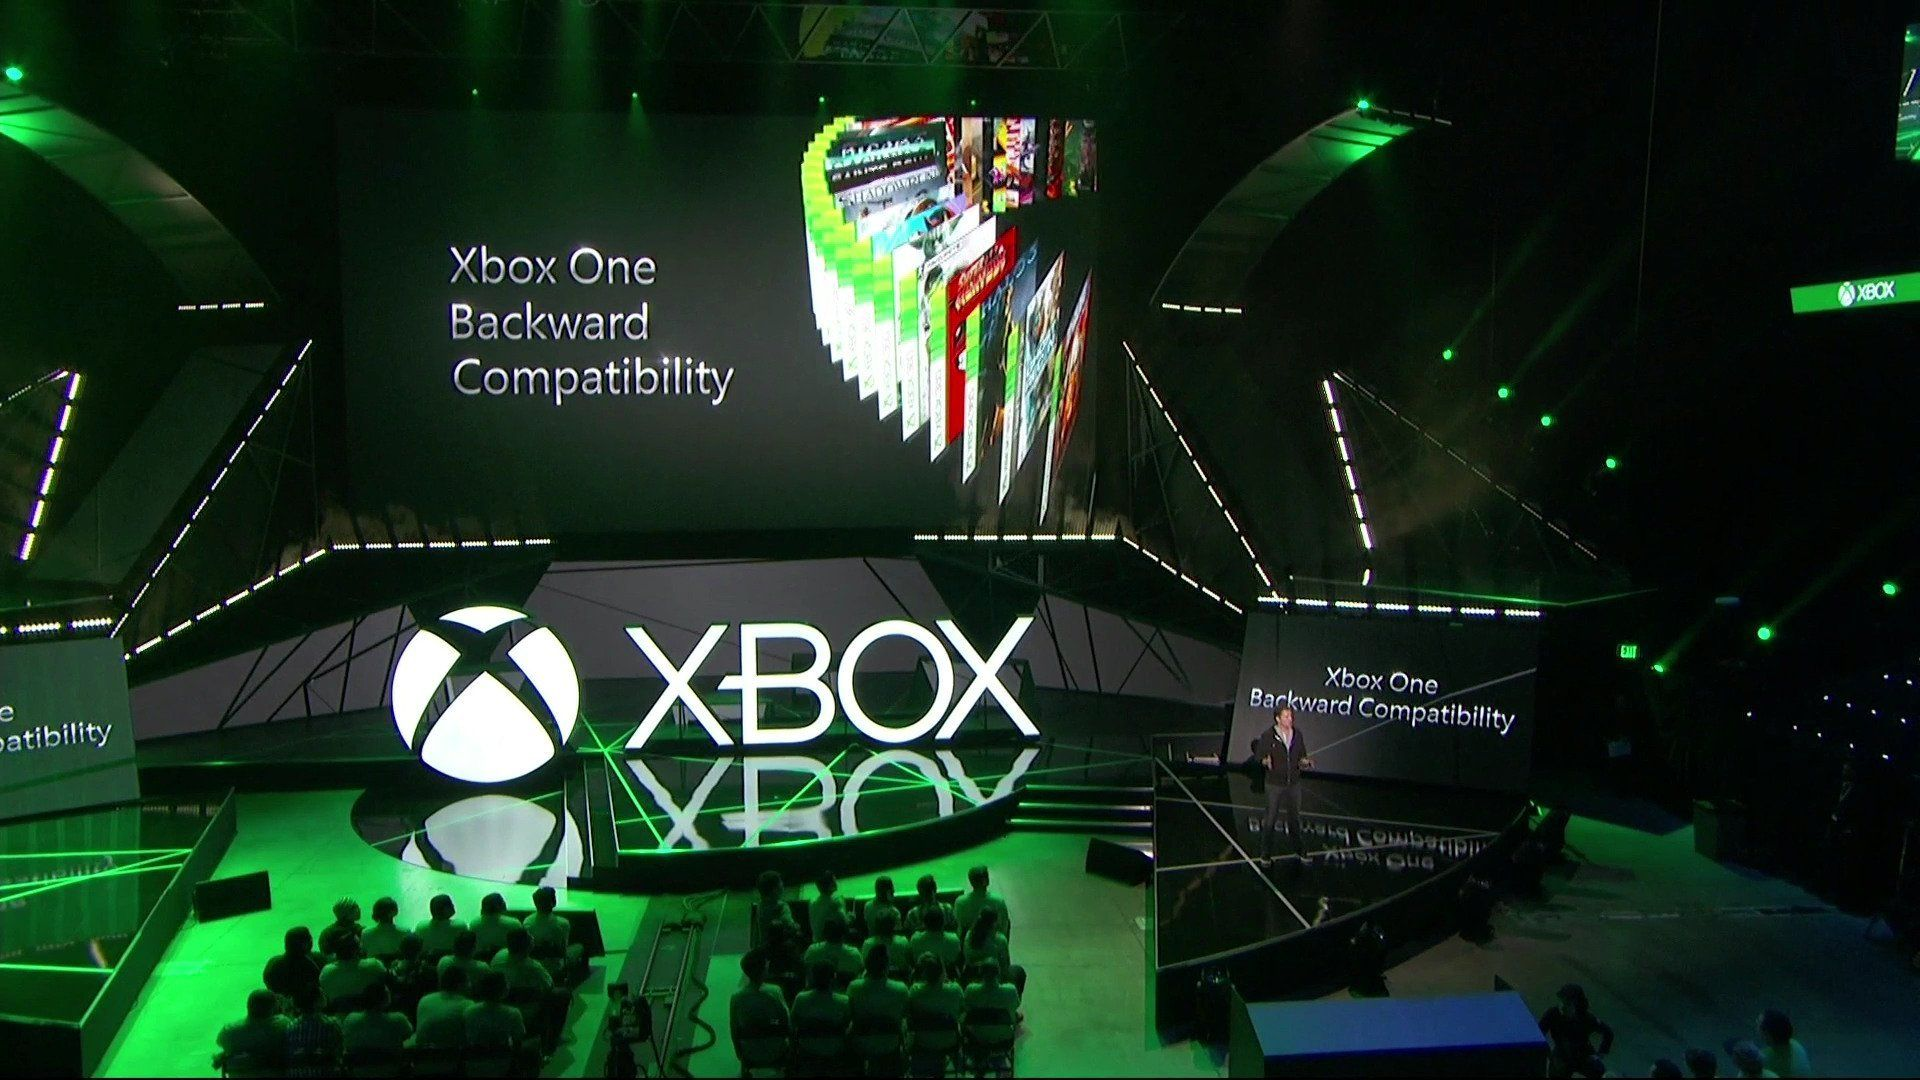 Xbox One backwards compatibility is extremely popular